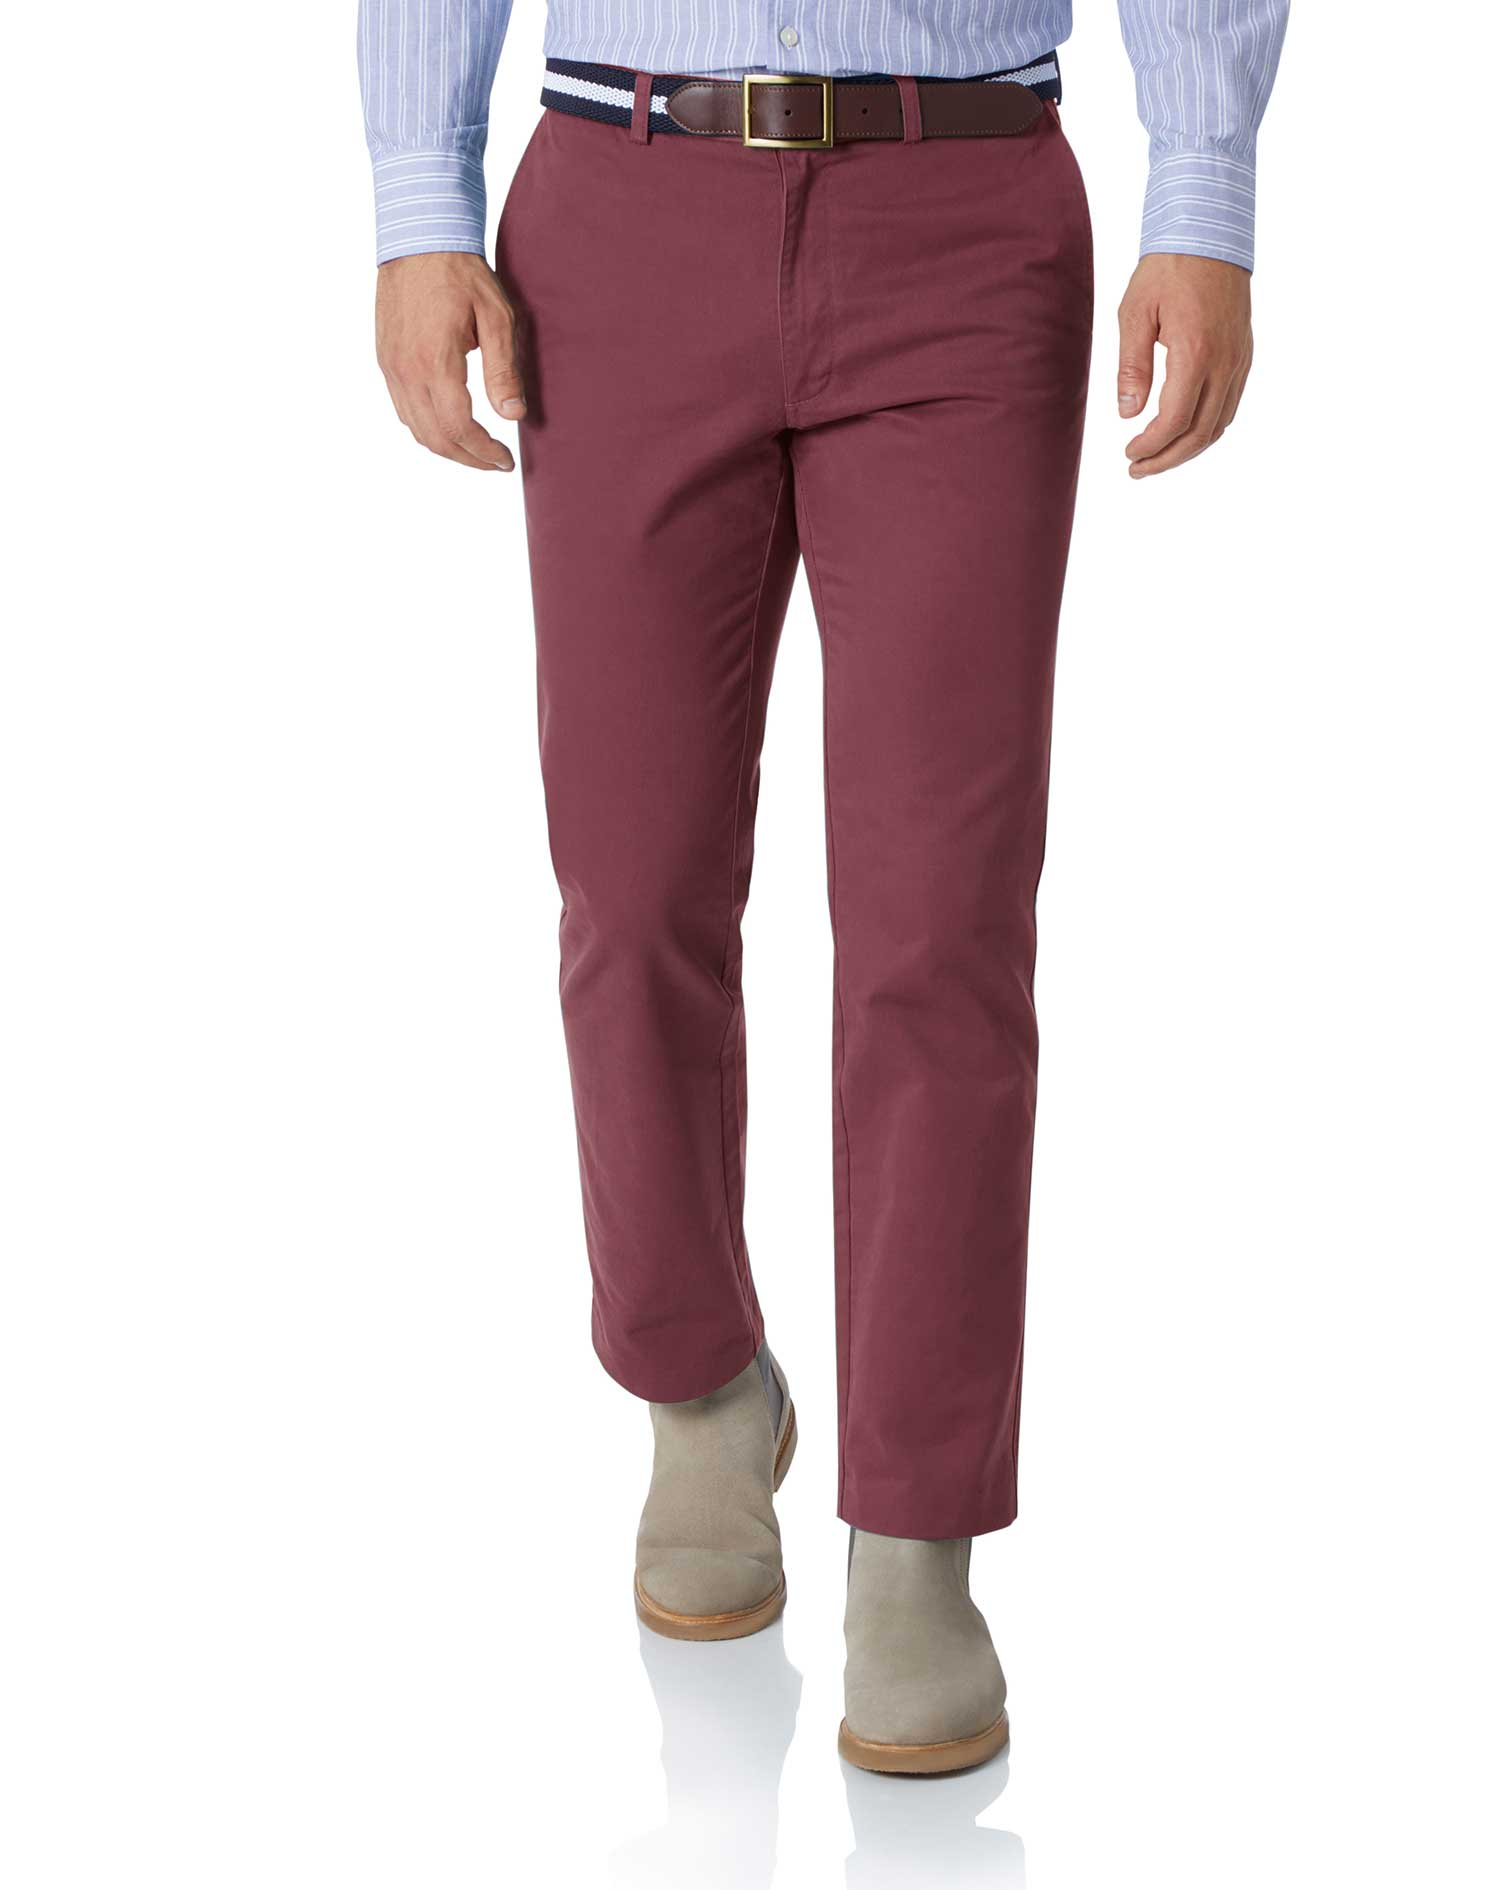 Dark Pink Slim Fit Flat Front Washed Cotton Chino Trousers Size W30 L32 by Charles Tyrwhitt